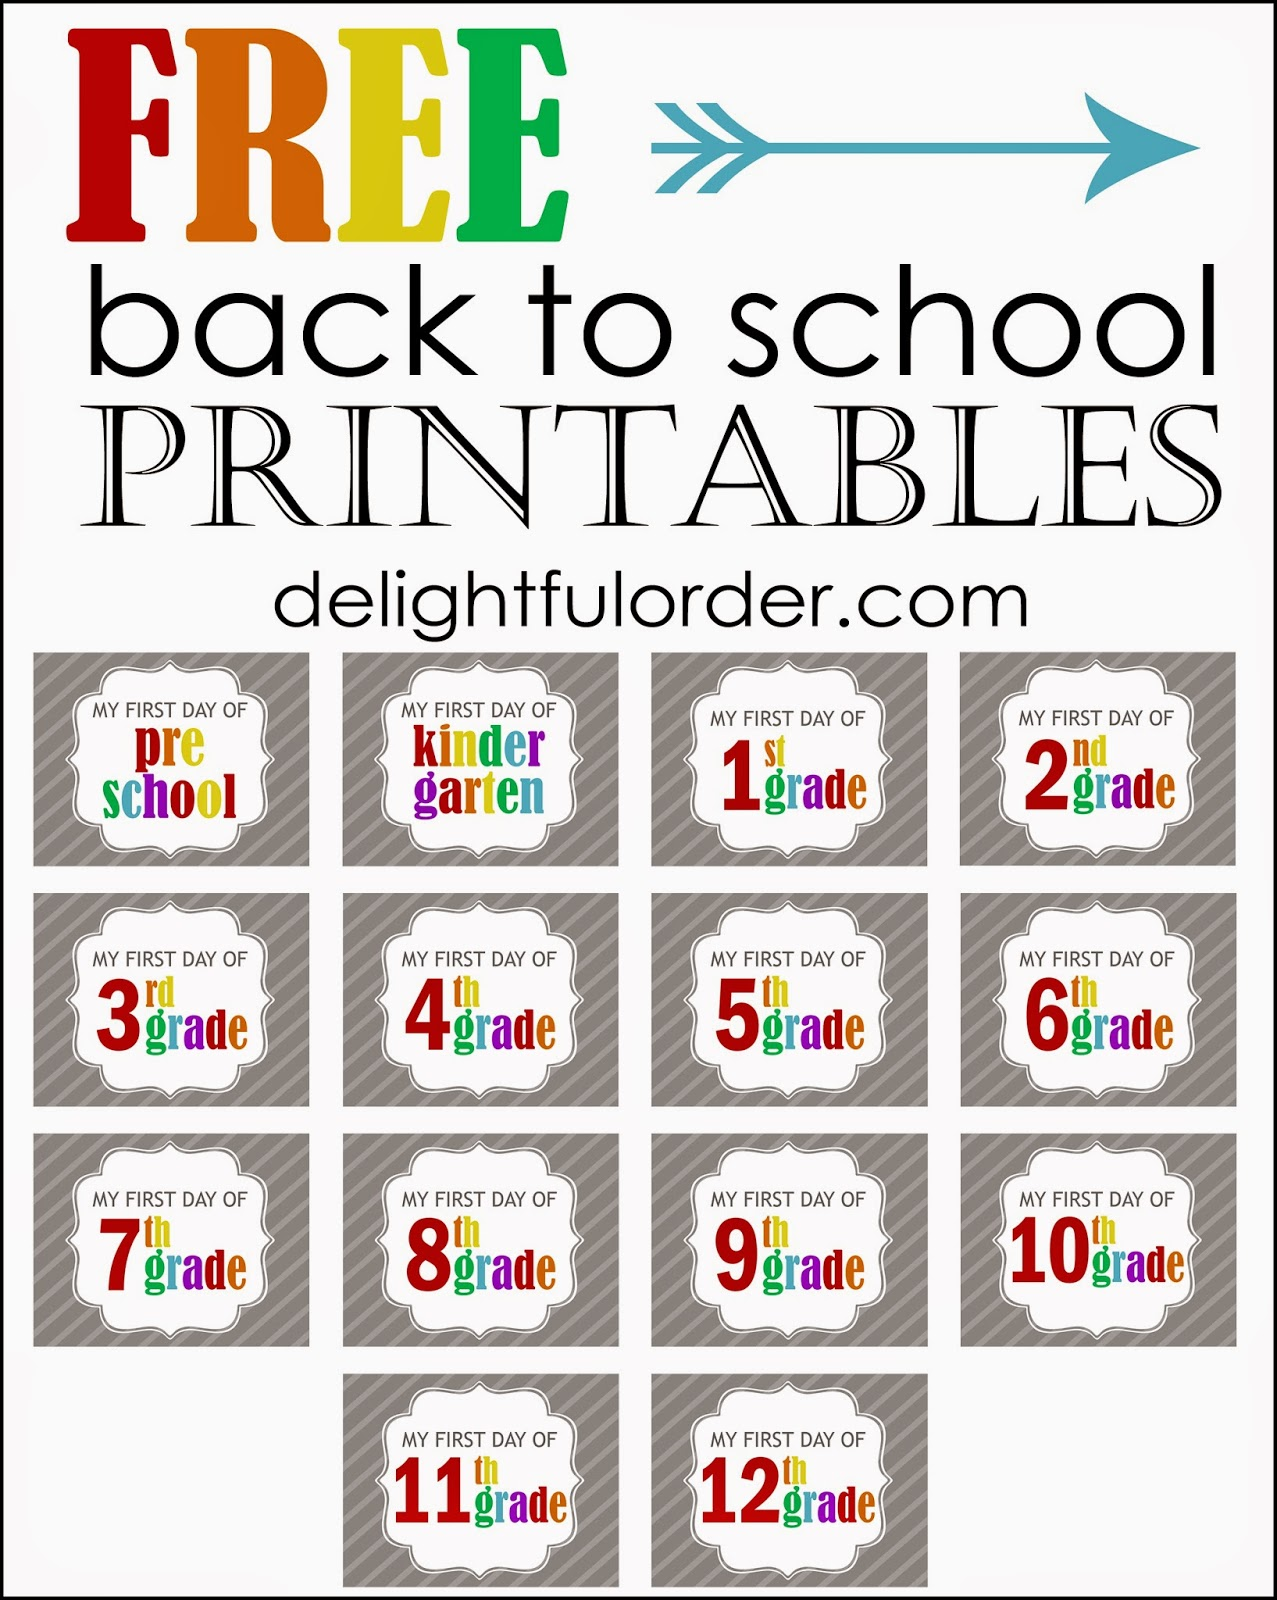 Delightful Order Free Back To School Printables